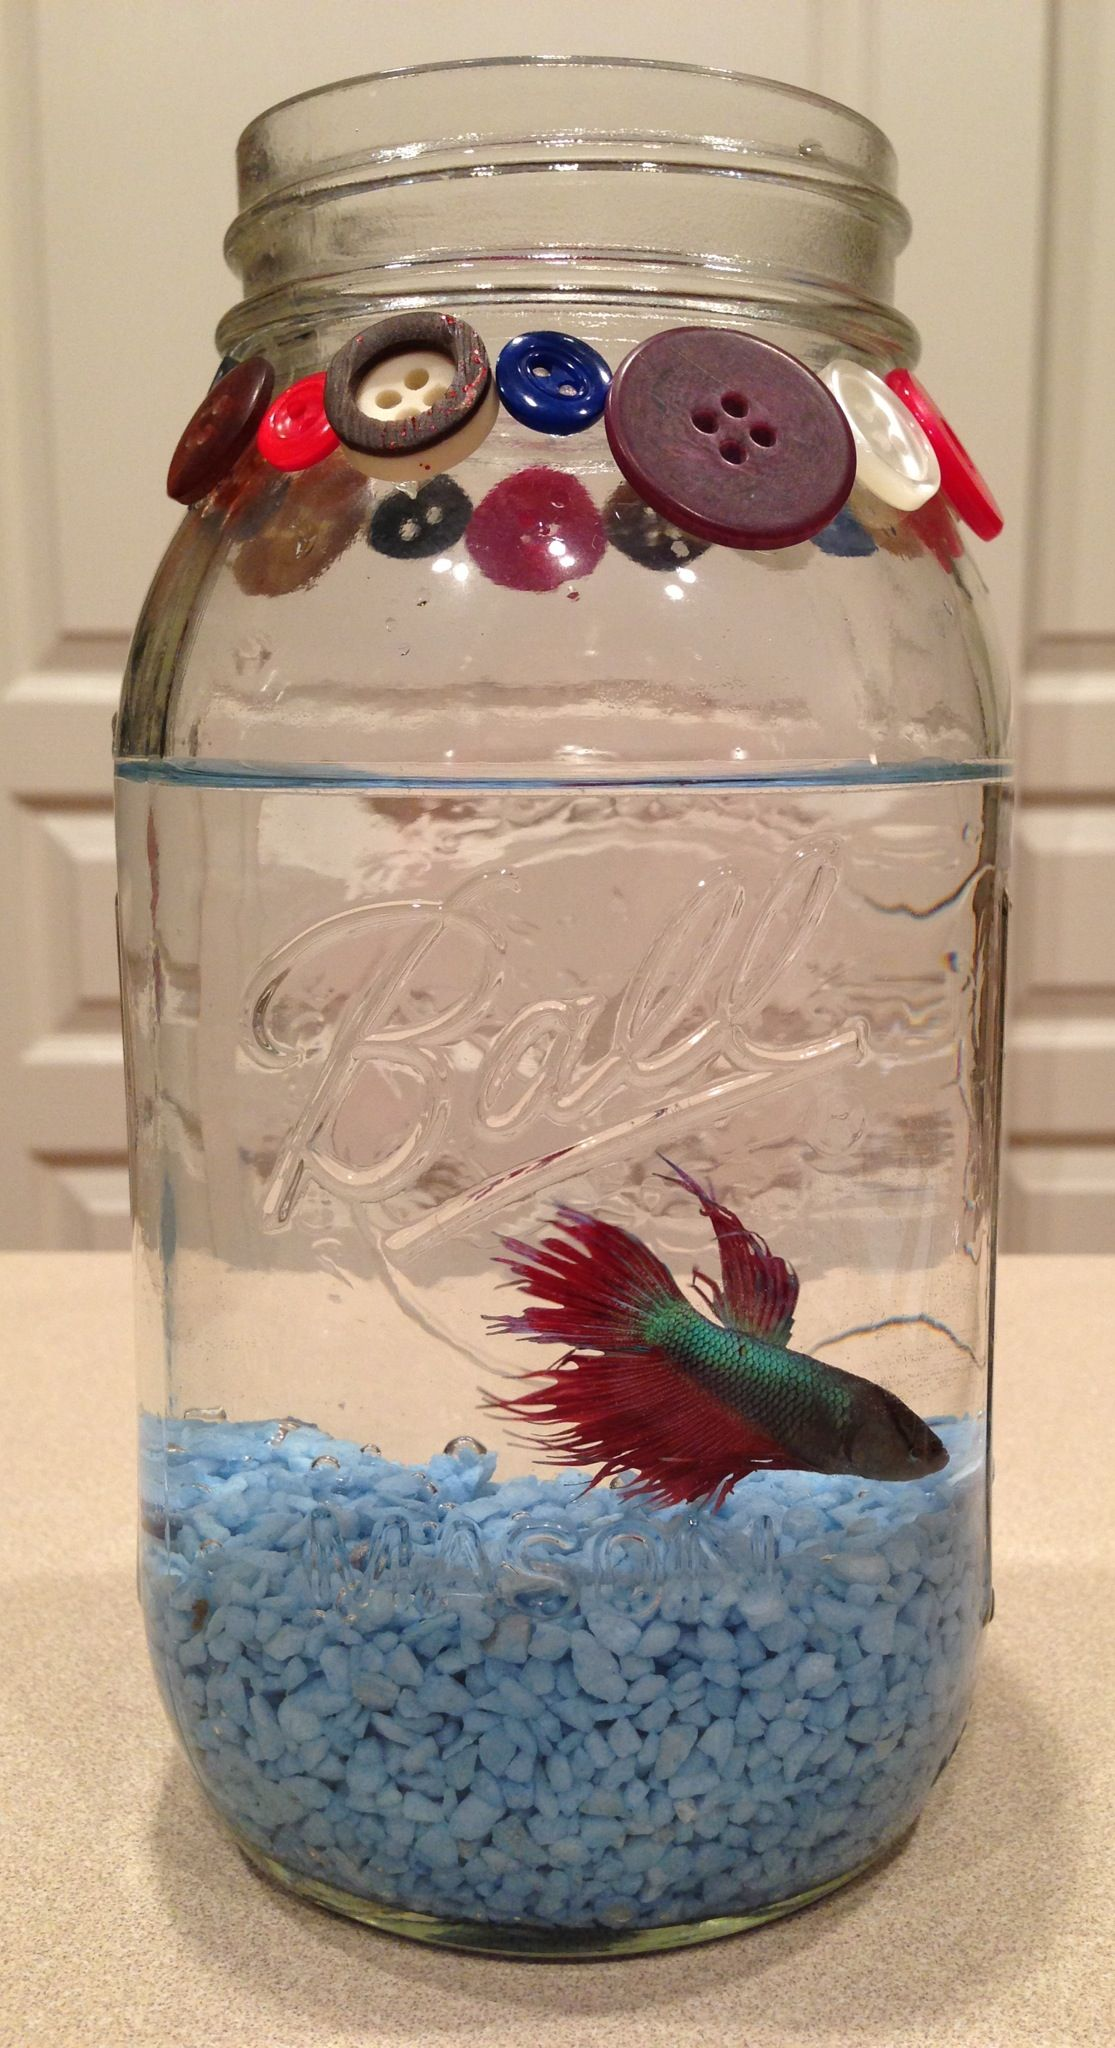 Decorate A Jar Use A Mason Jar As A Fish Bowl Decorate With Buttons Ribbon